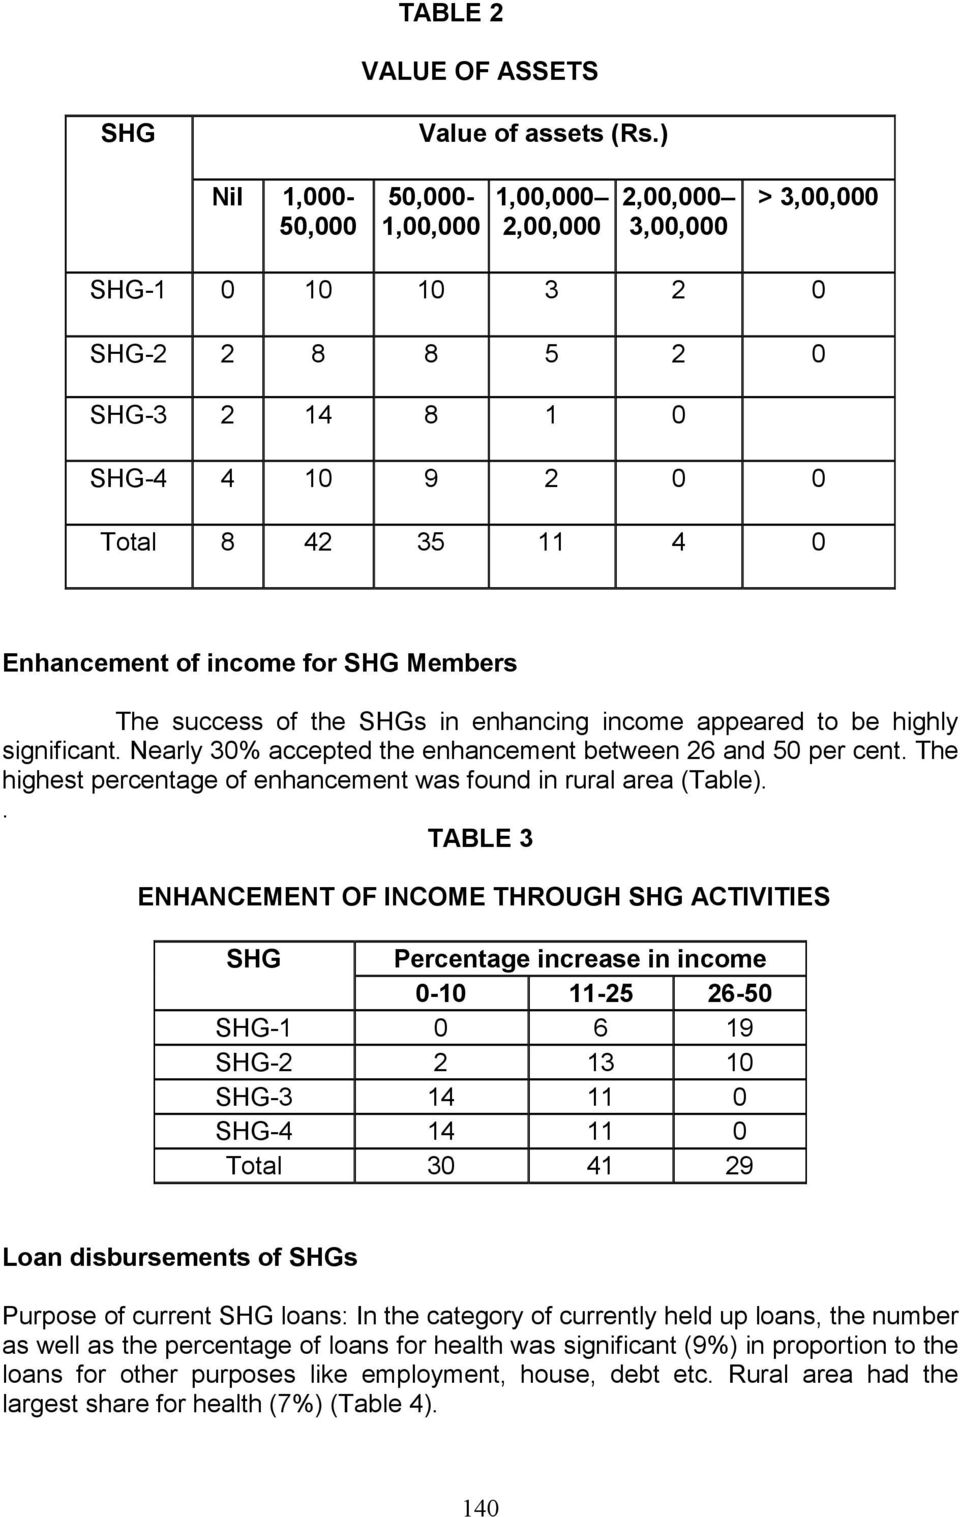 for SHG Members The success of the SHGs in enhancing income appeared to be highly significant. Nearly 30% accepted the enhancement between 26 and 50 per cent.